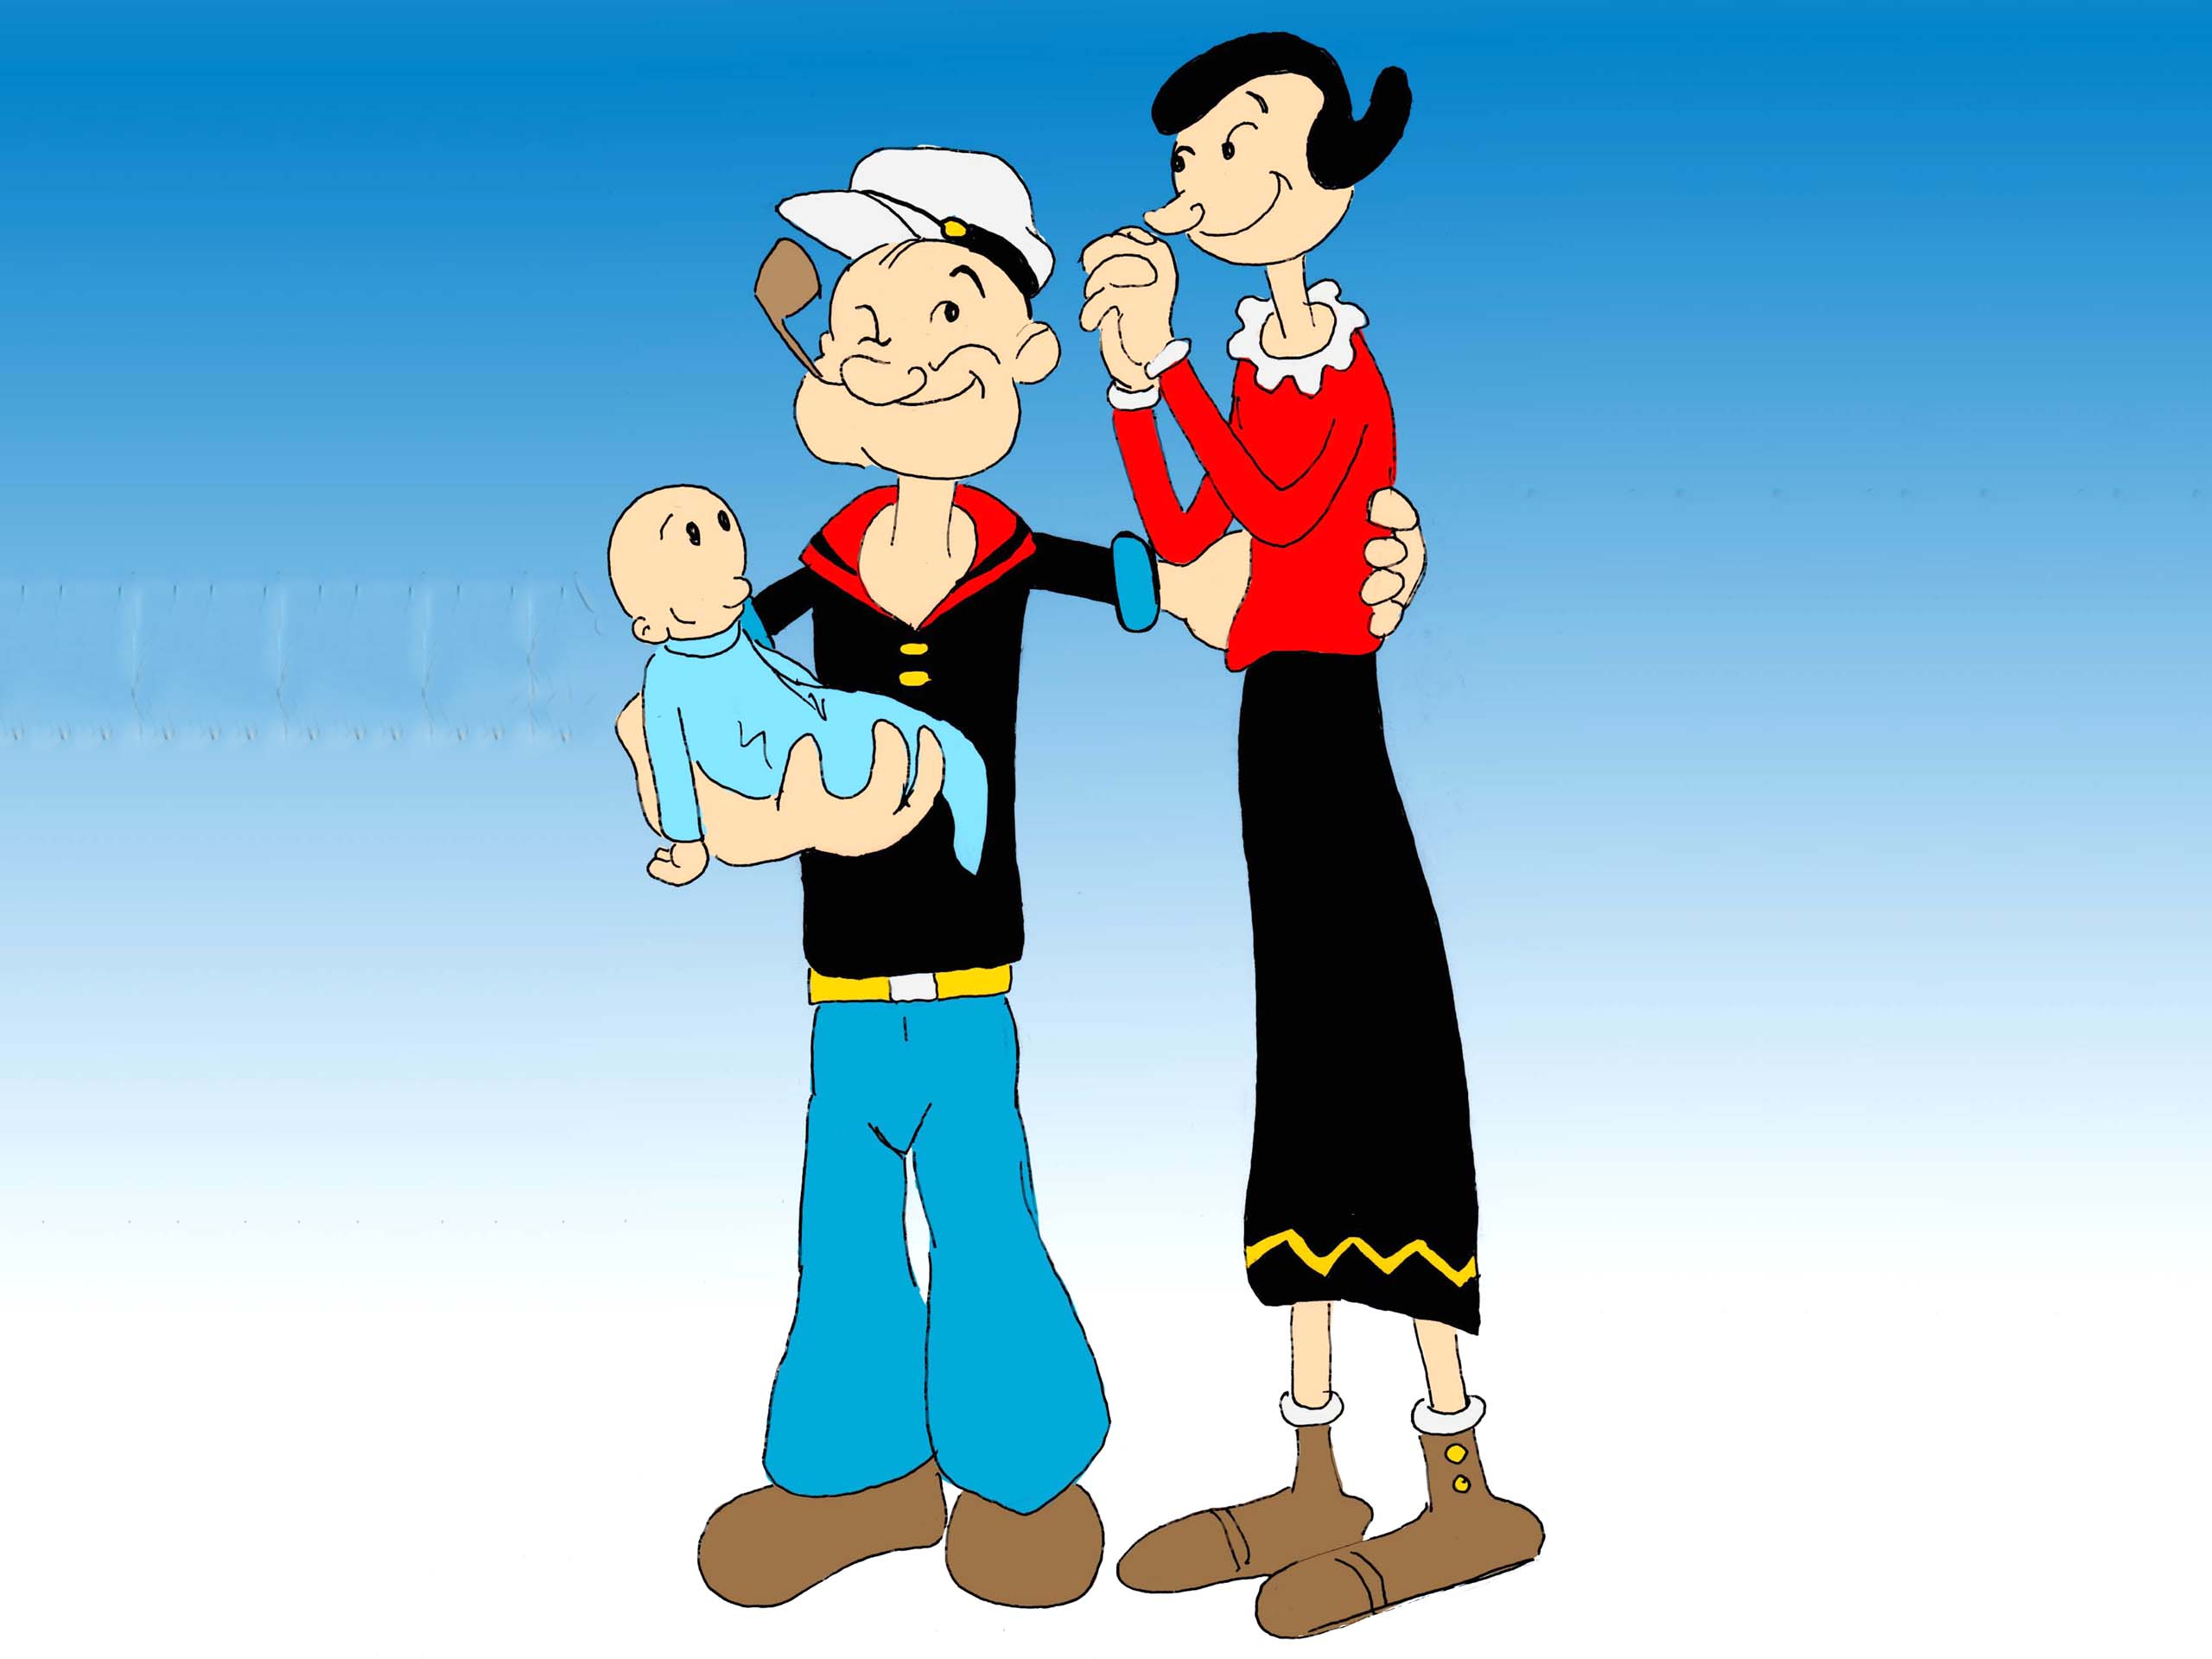 Popeye Wallpapers, Pictures, Images  Popeye Wallpape...